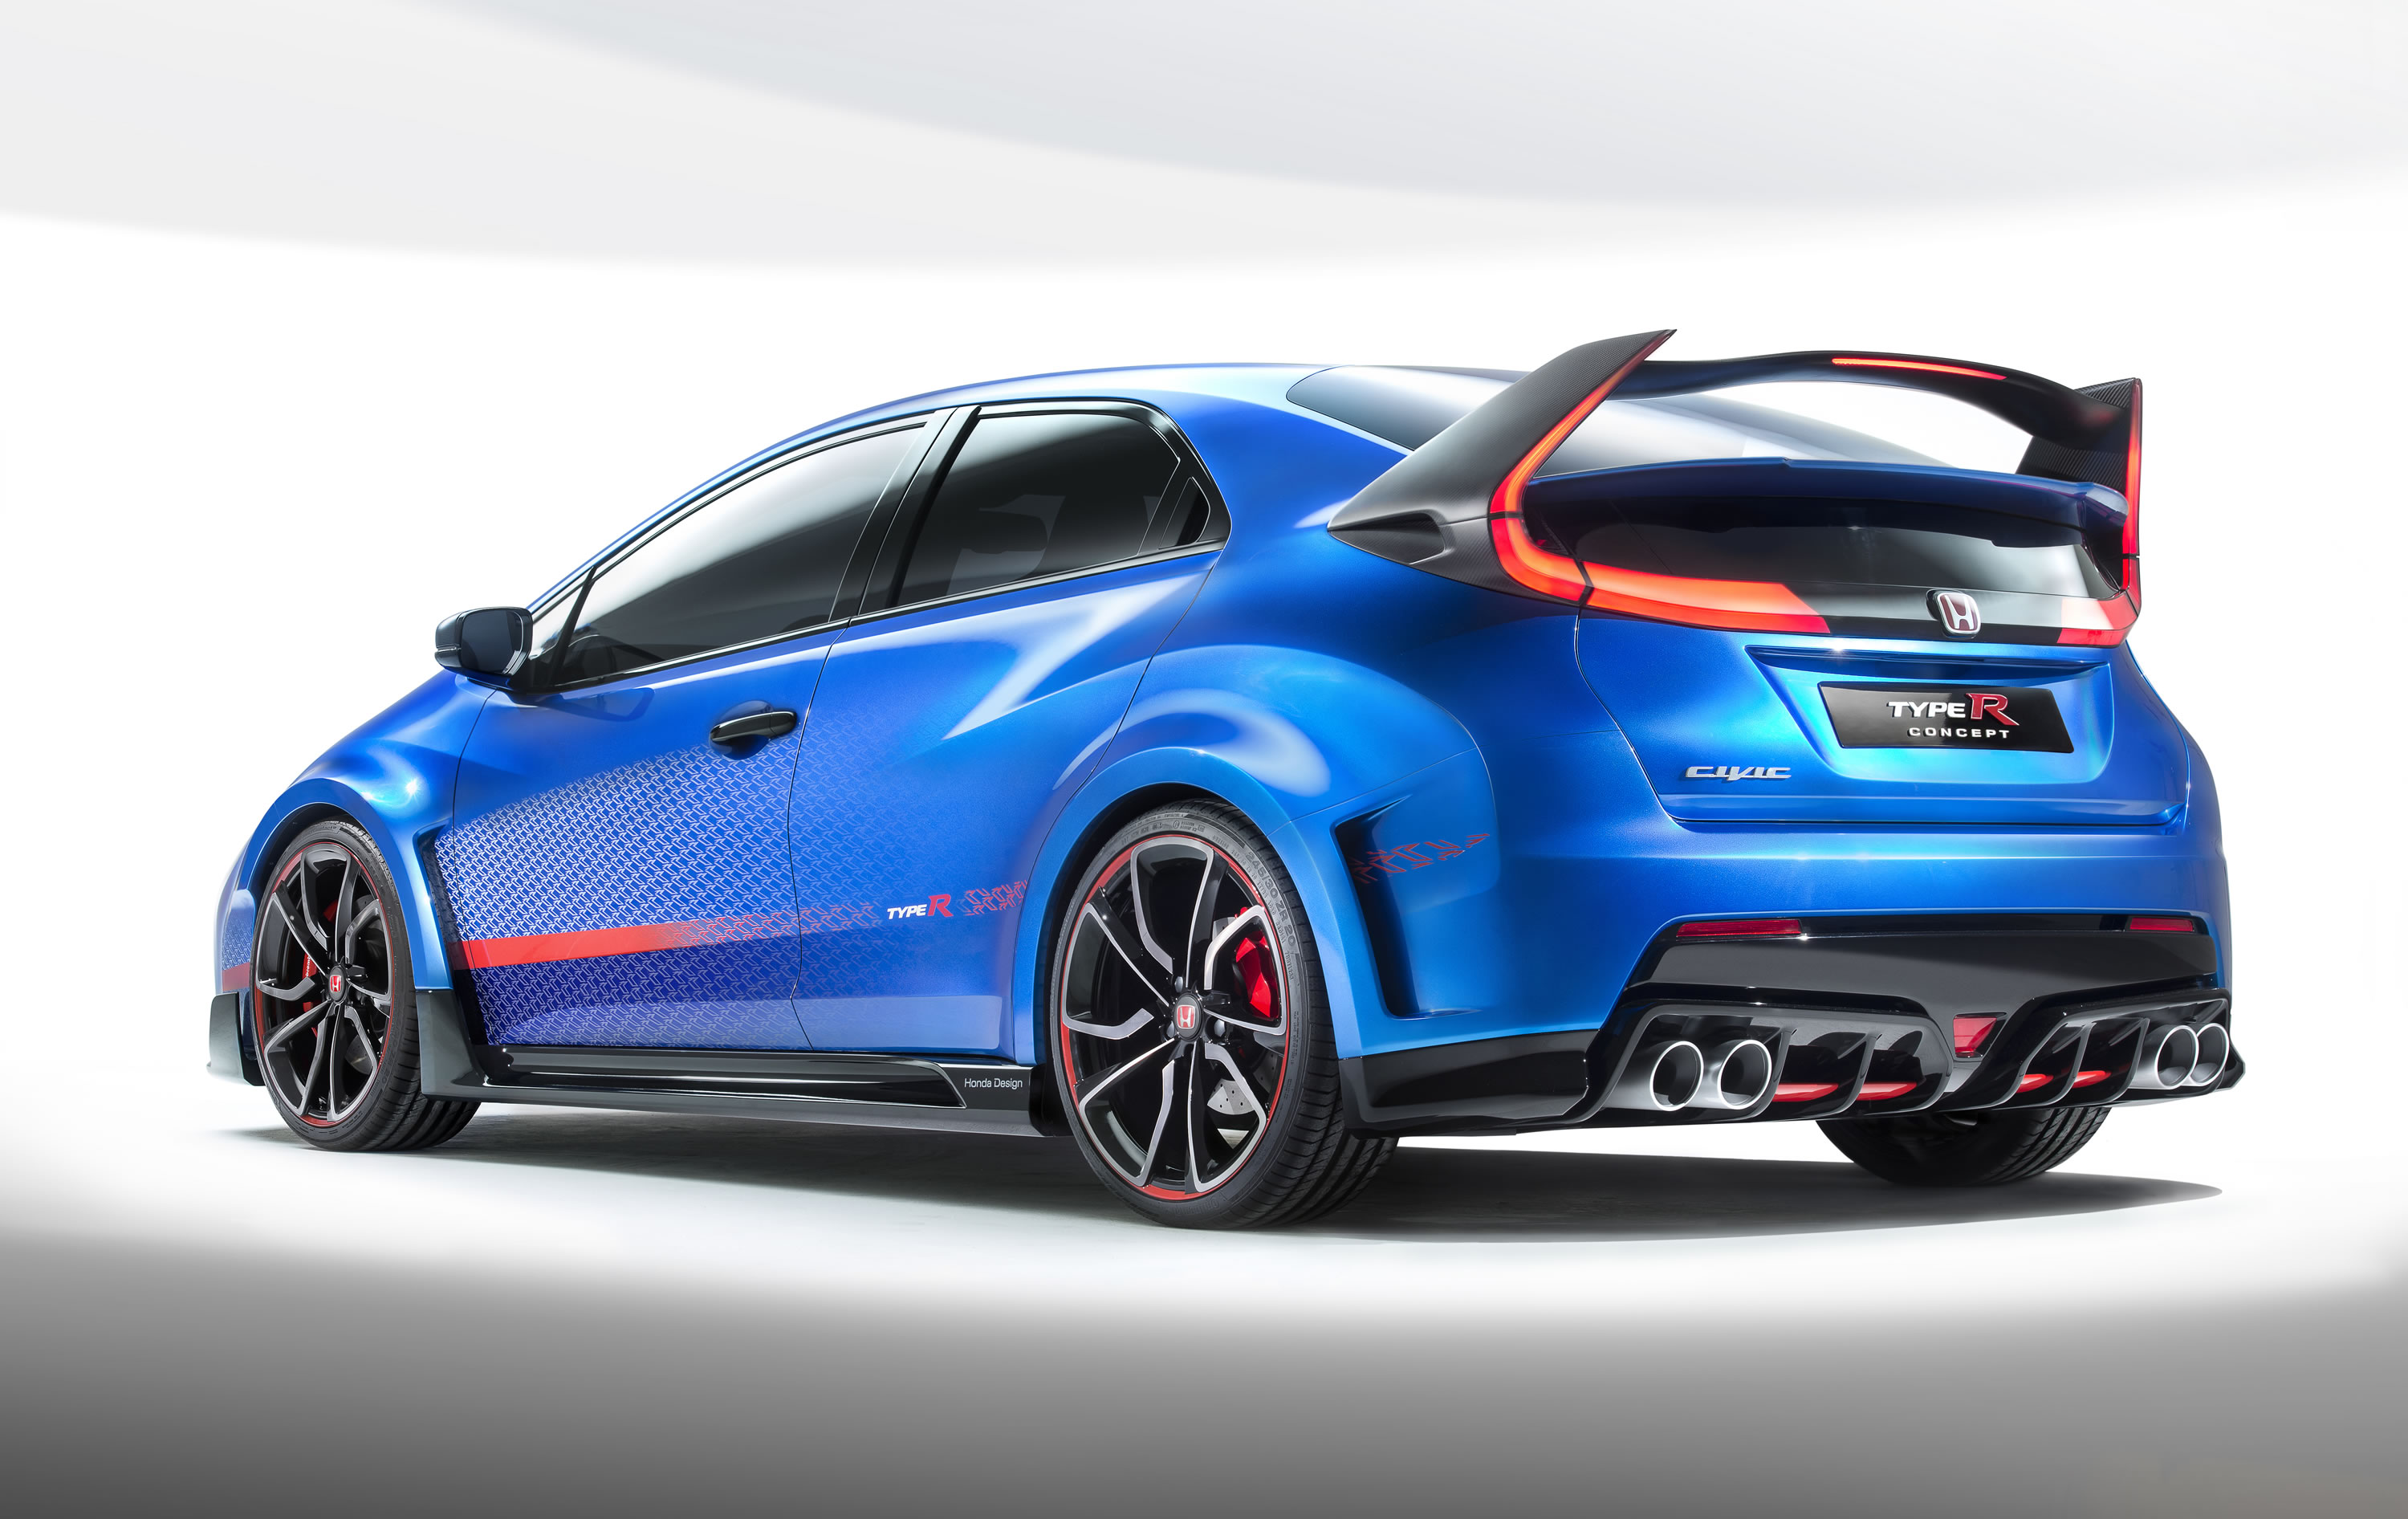 2014 honda civic type r ii photos, specs and review - rs